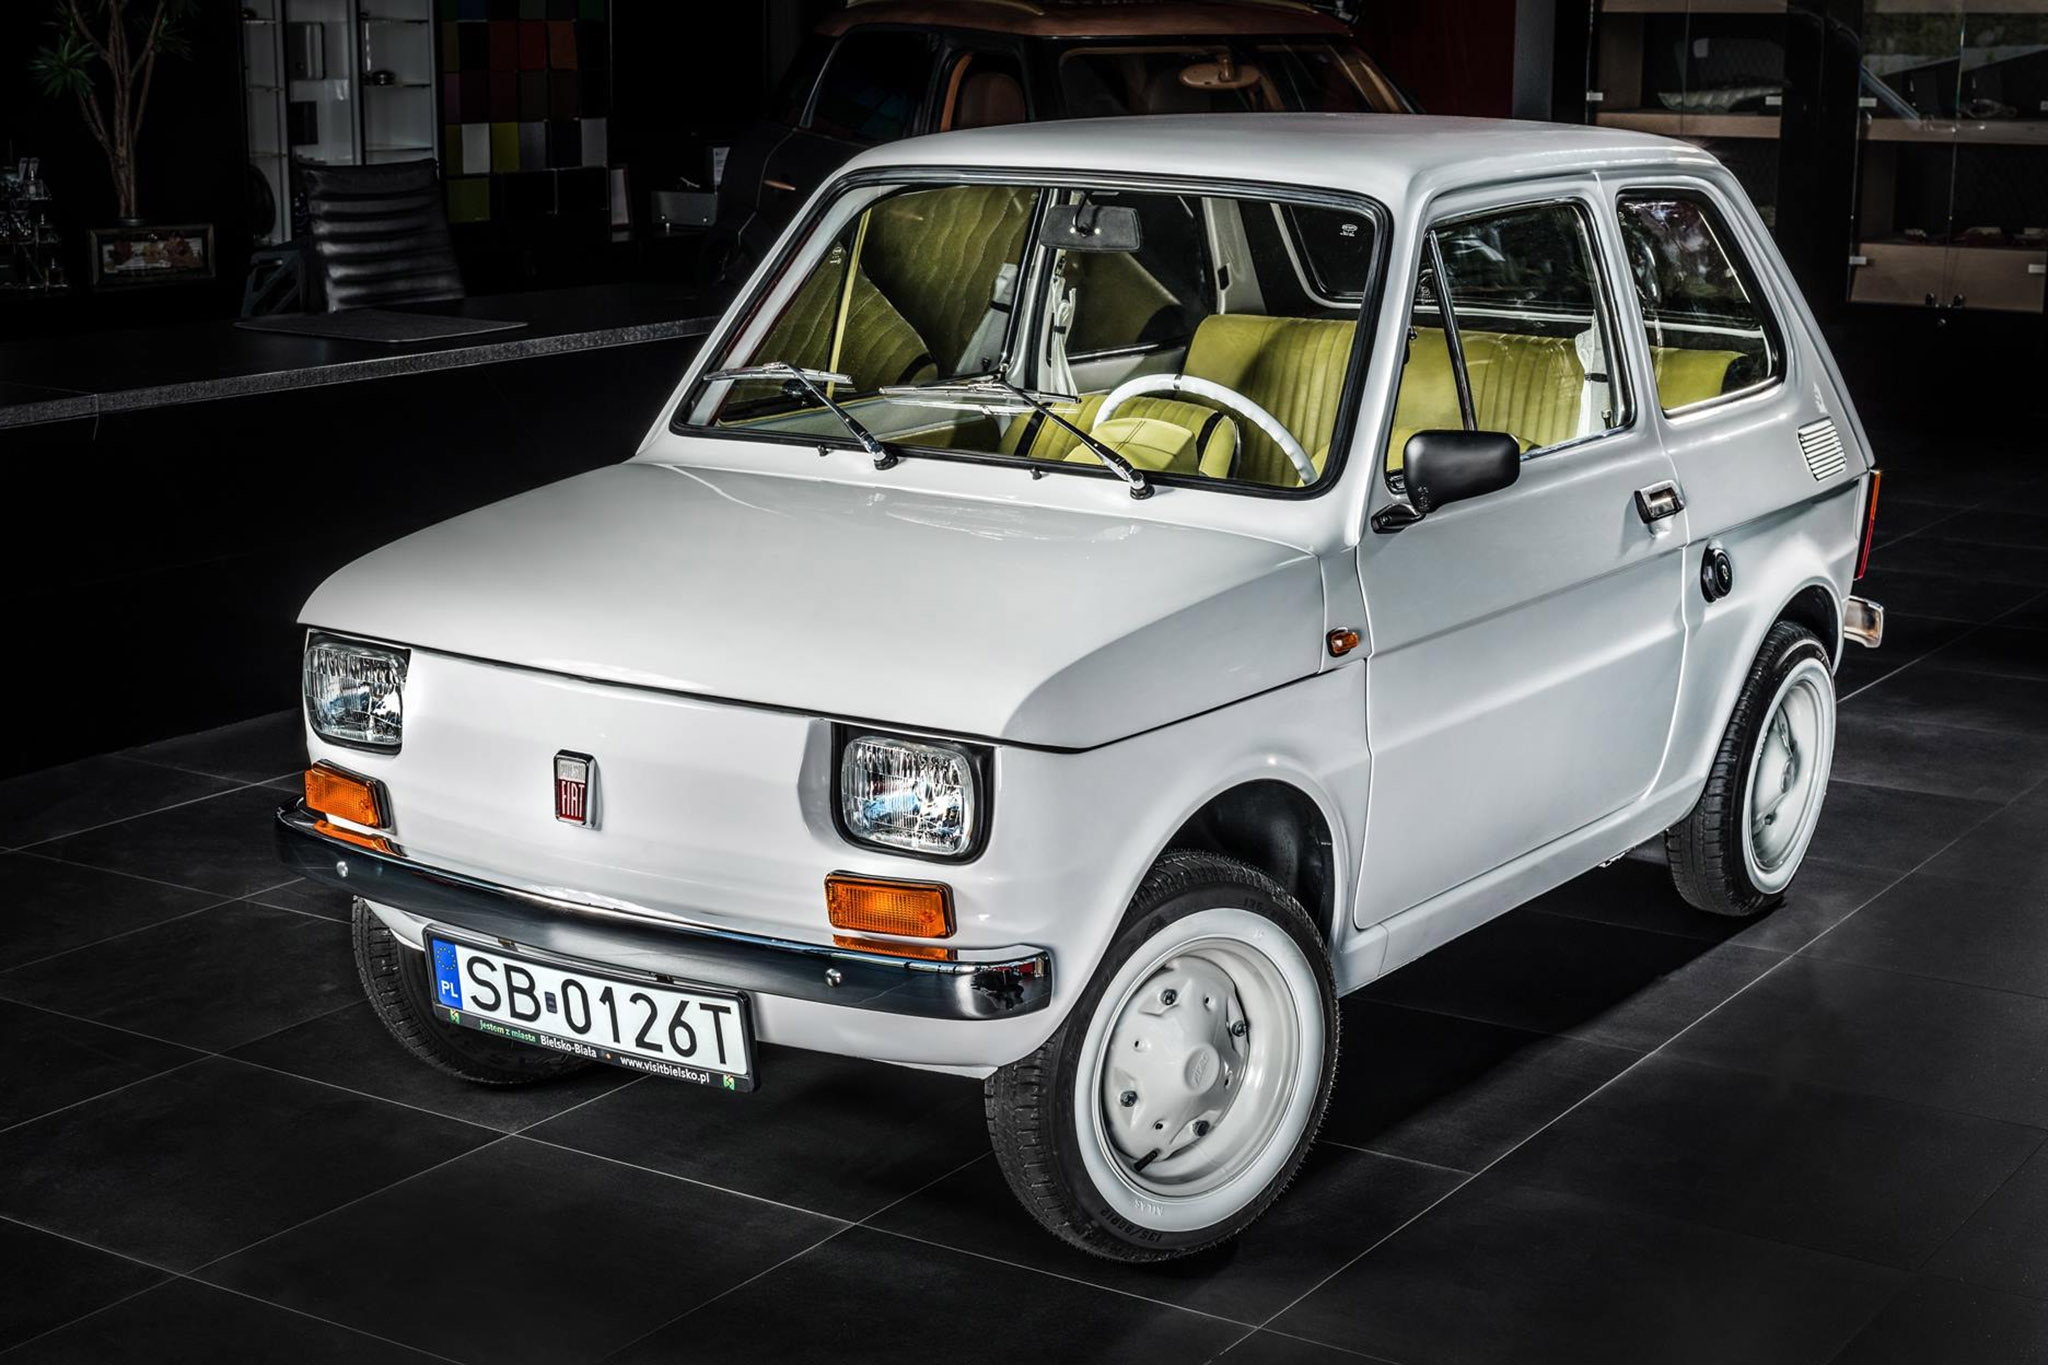 Tom Hanks 1974 Fiat 126p Carlex Design Front Three Quarter